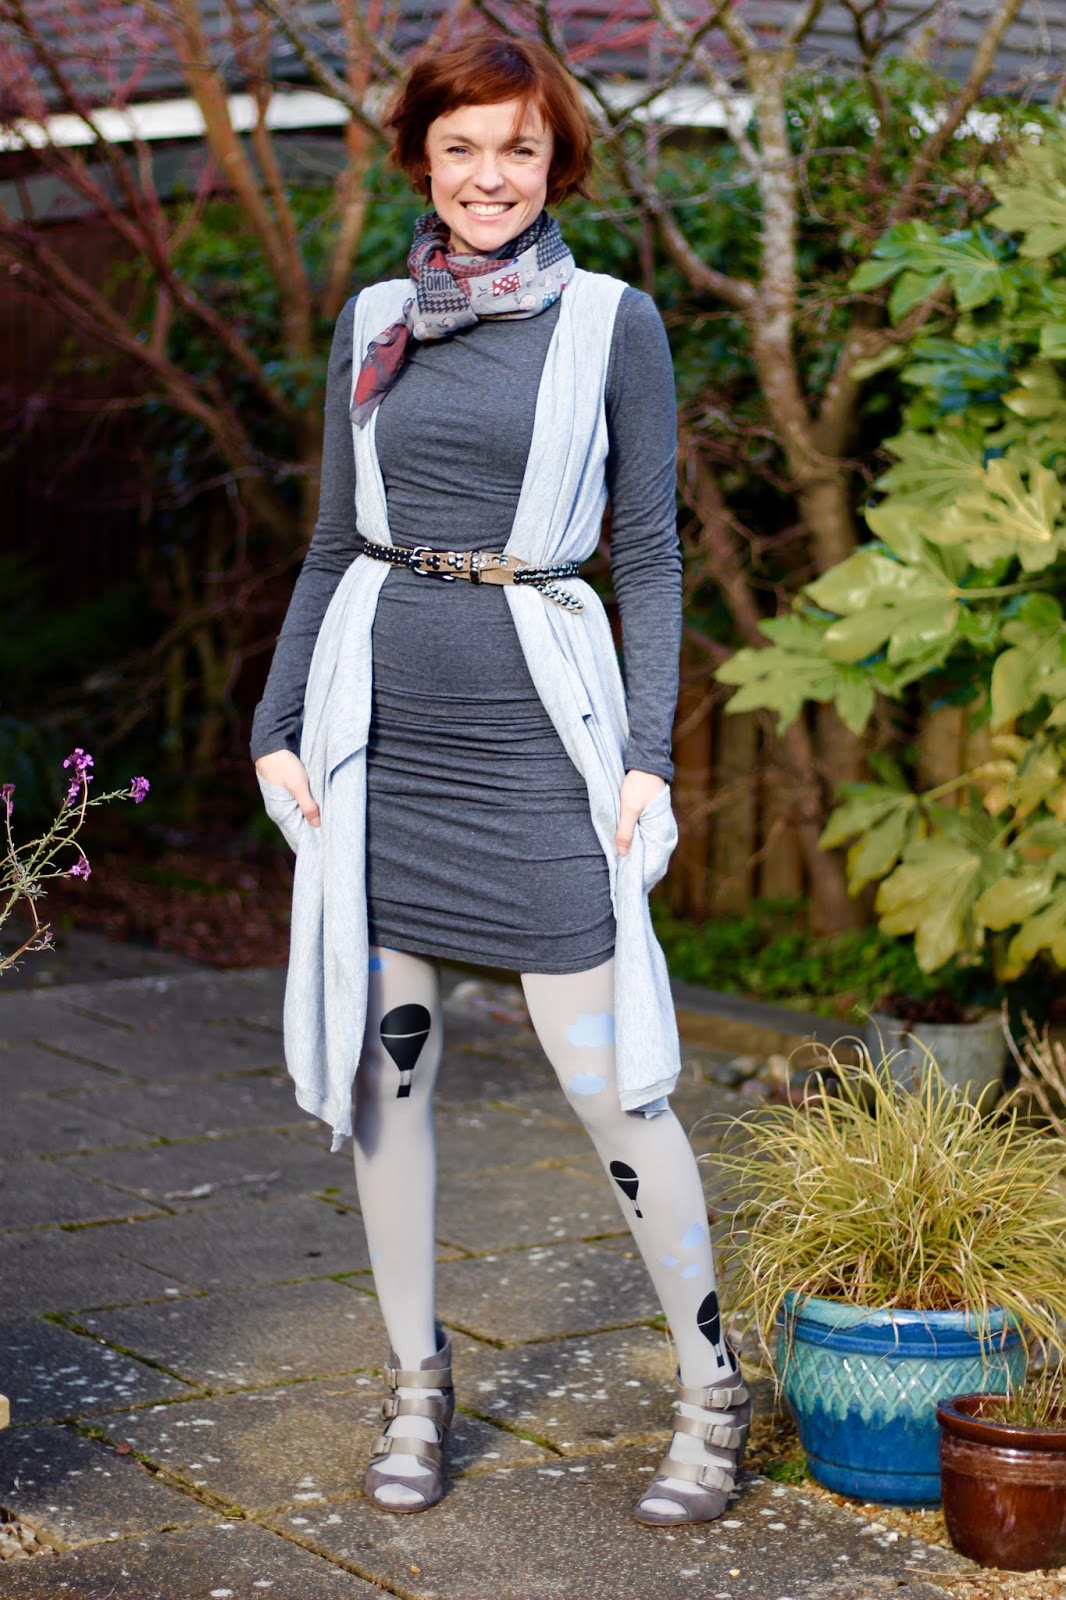 Boring Shades of Grey | Plain T-shirt Baukjen Dress & Fun Zohara BalloonTights!